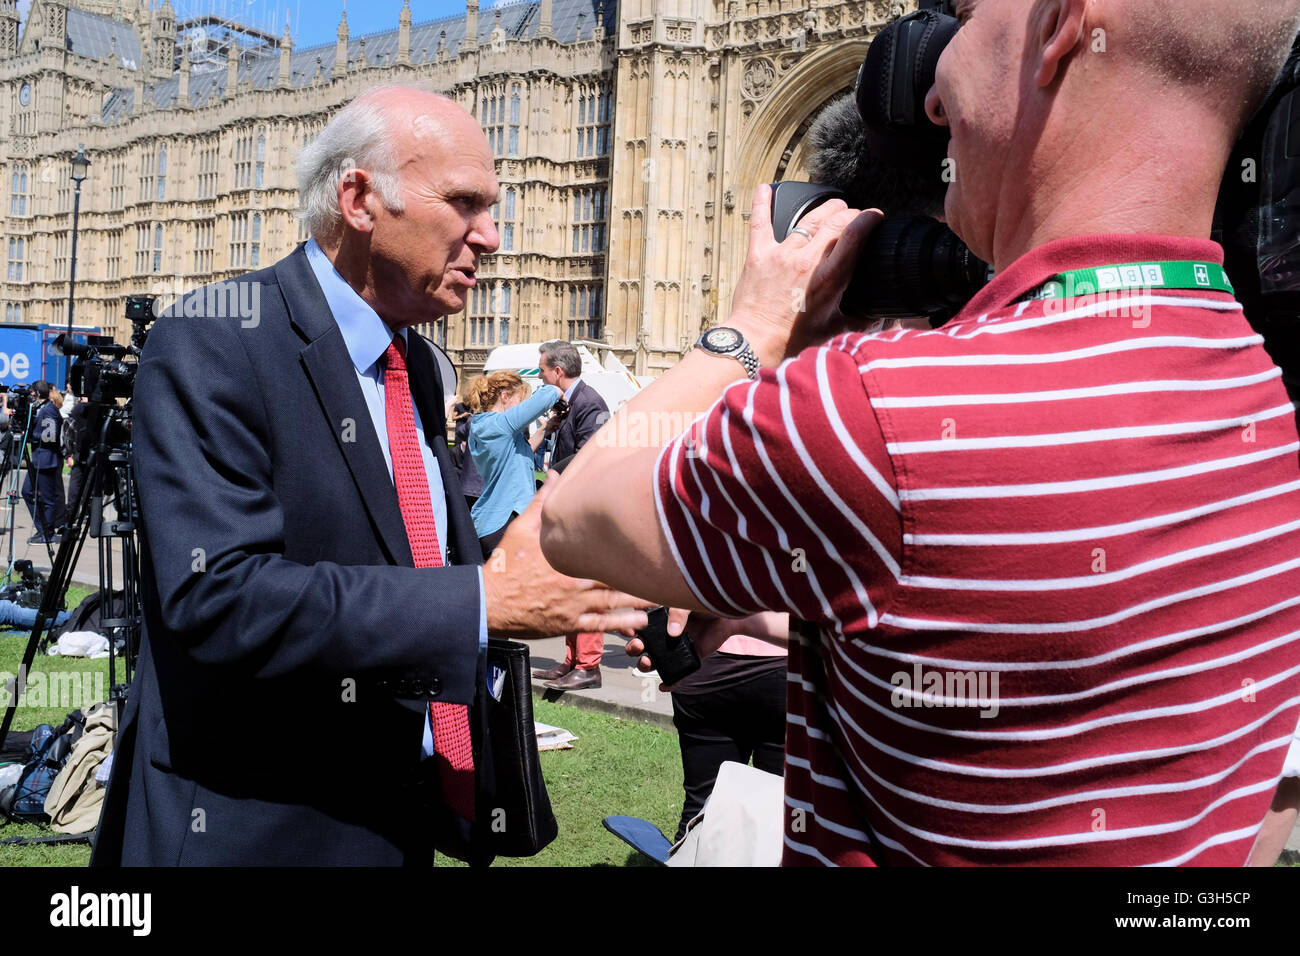 London, UK. 24 June 2016. Vince Cable, Liberal Democrat MP and Secretary of State for Business, Innovation and Skills - Stock Image